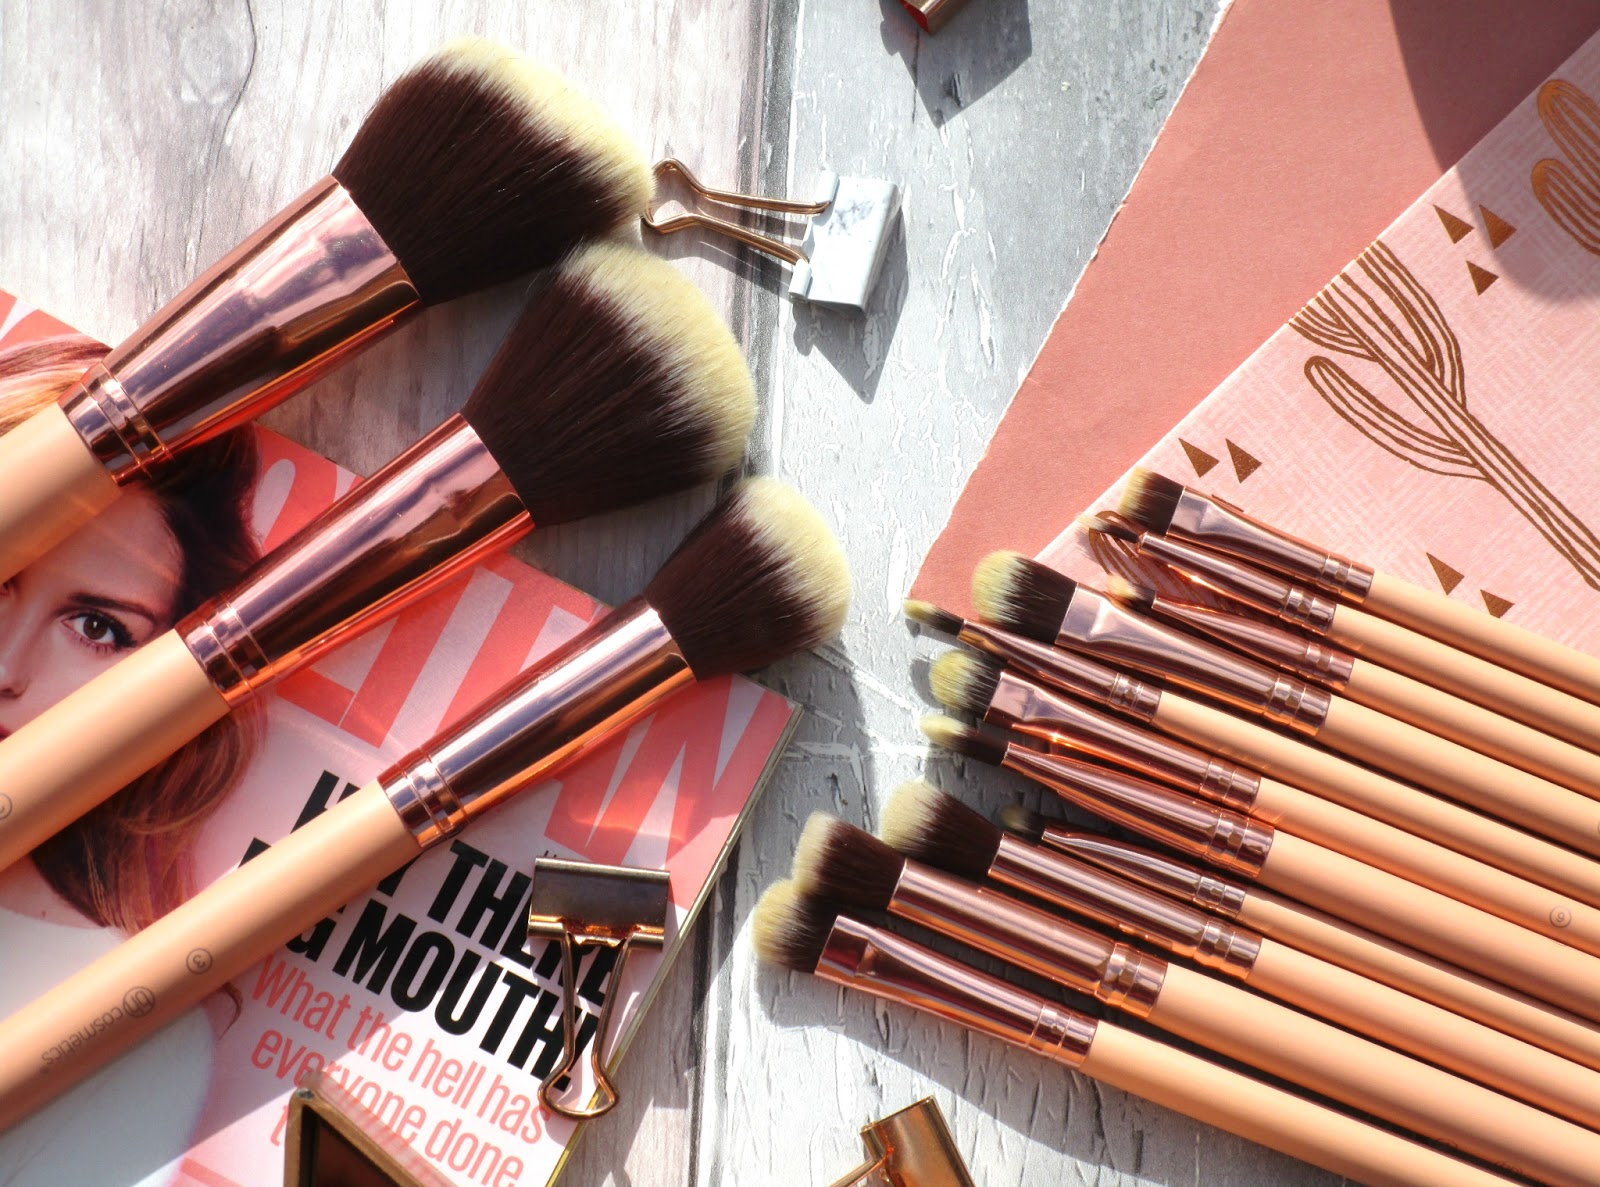 16b92141af6bd The BH Cosmetics Chic Brush Set  consists of 14 cruelty free - synthetic  brushes which all have gorgeous peach rose gold coloured handles and two  tones ...